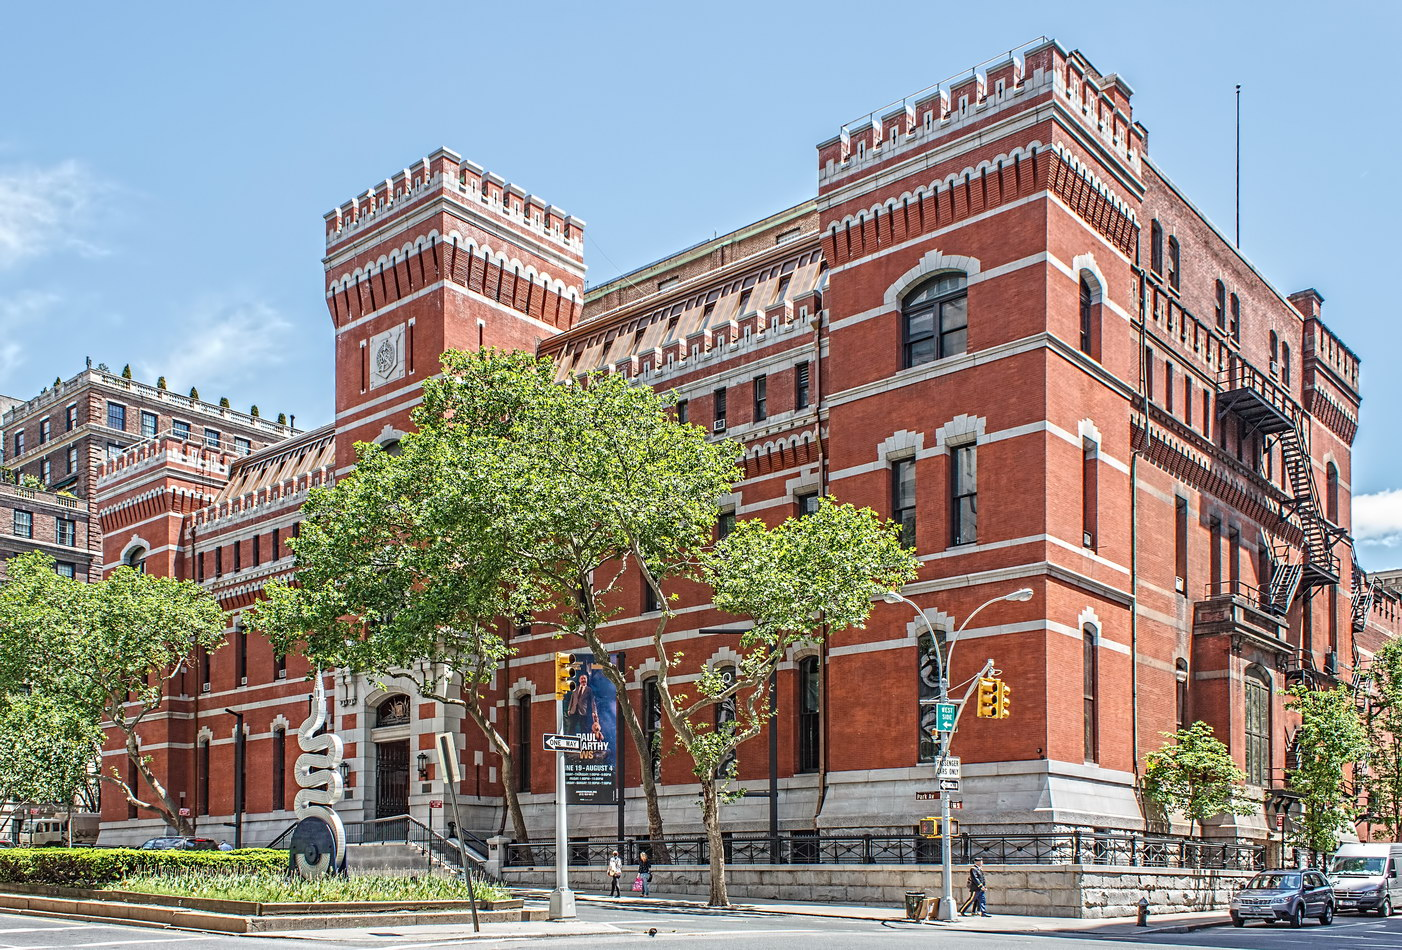 Seventh Regiment Armory